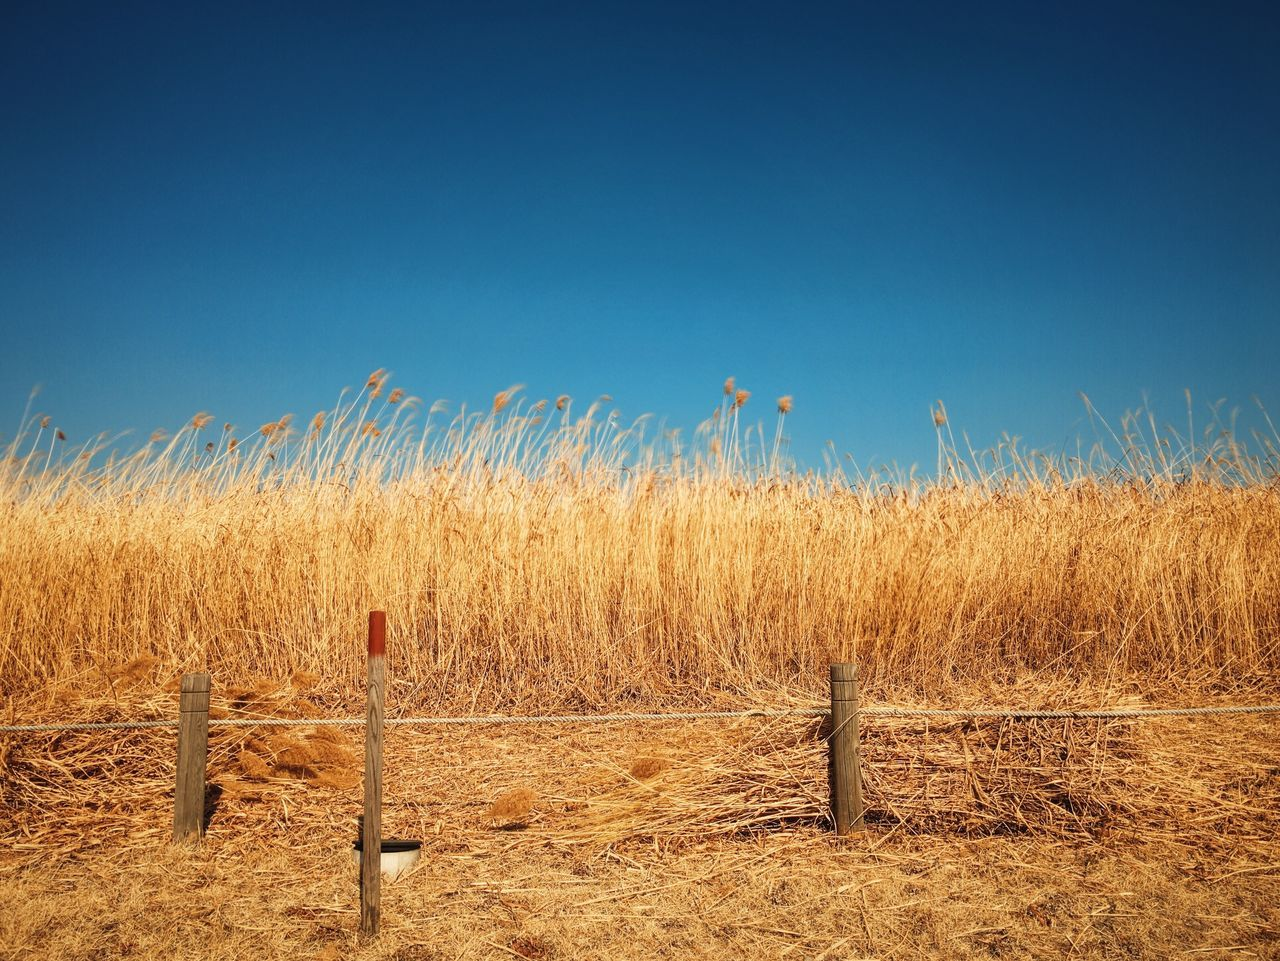 clear sky, field, blue, copy space, rural scene, agriculture, landscape, farm, tranquility, tranquil scene, nature, crop, growth, horizon over land, scenics, beauty in nature, day, plant, no people, cultivated land